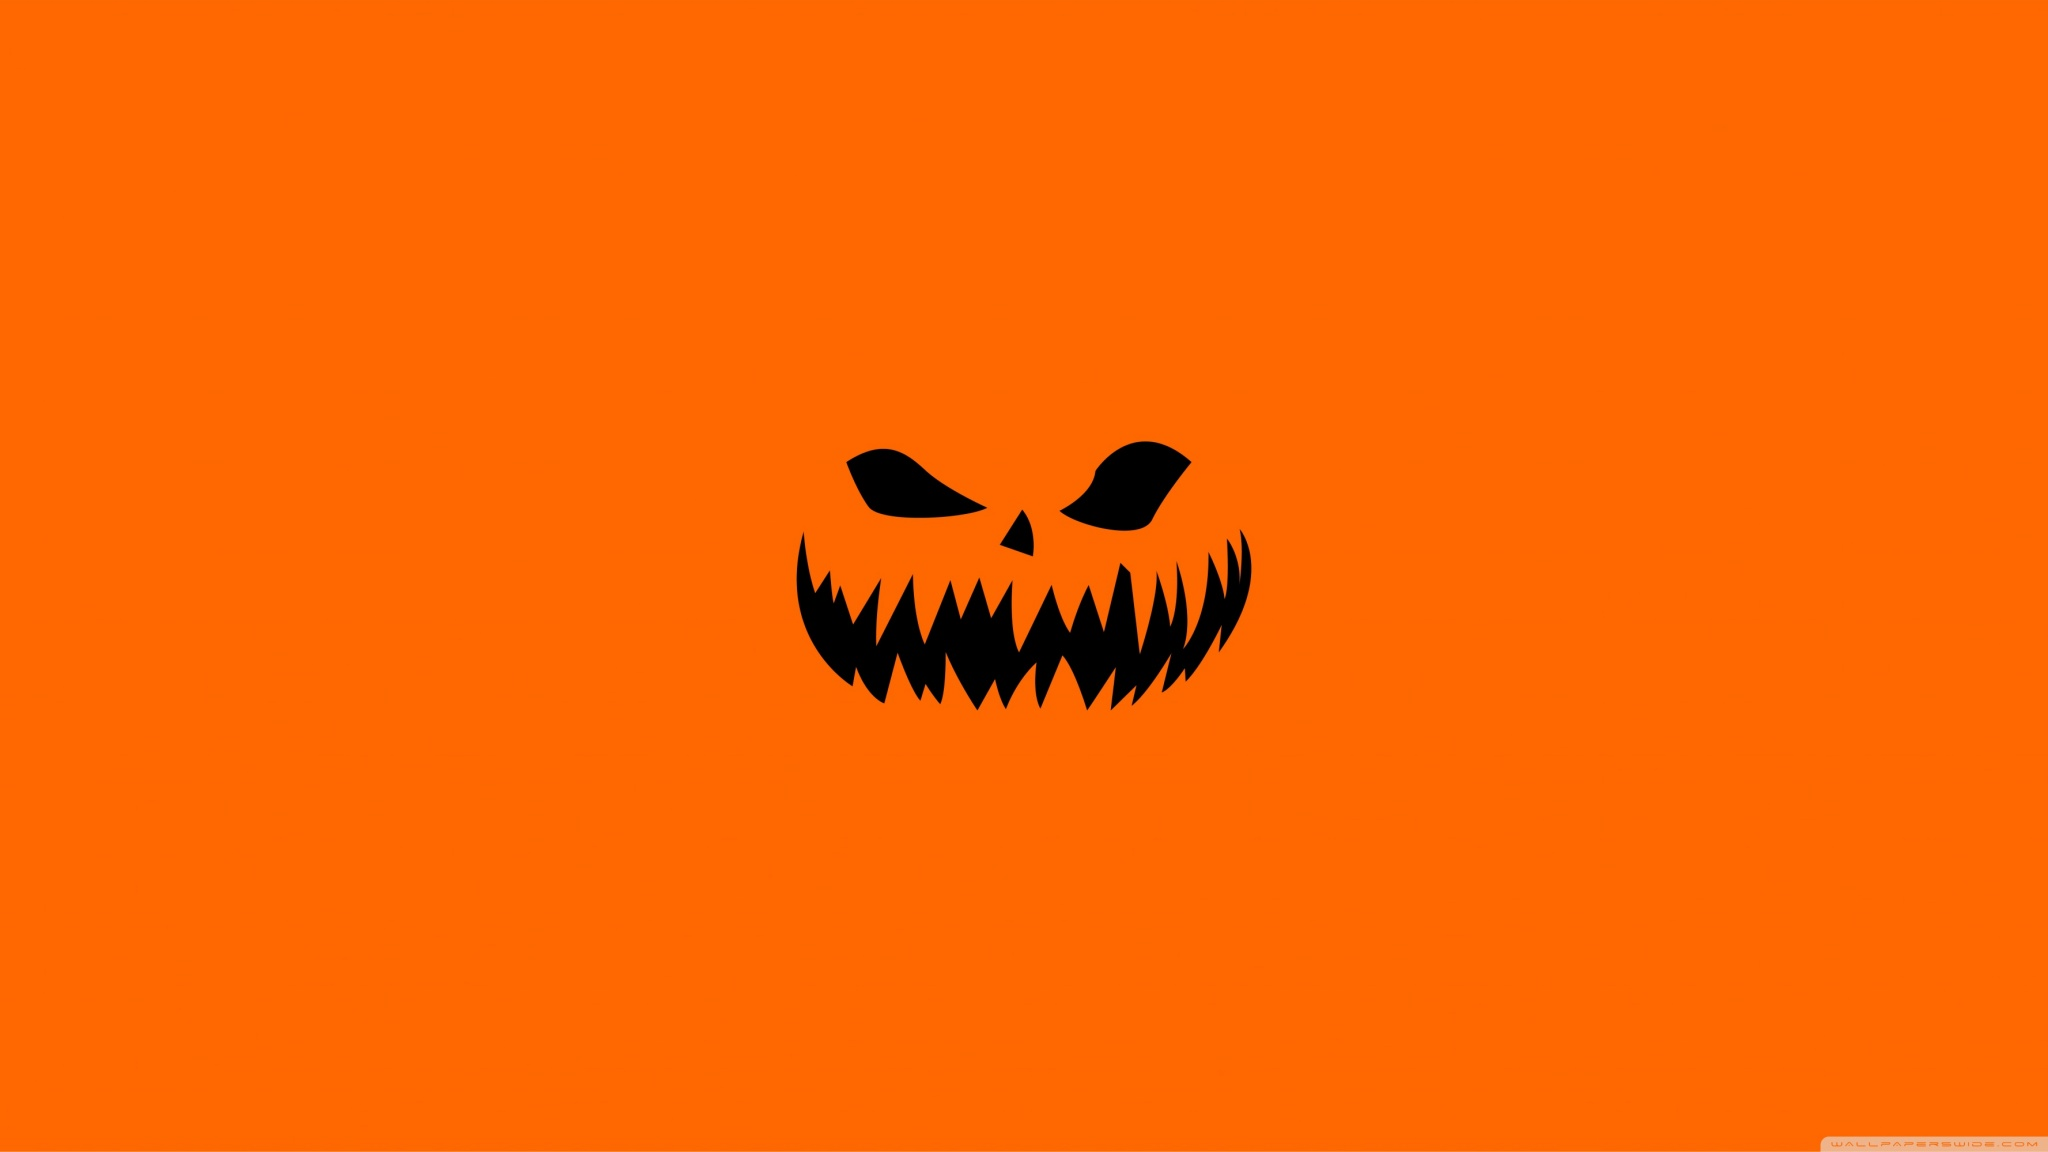 Scary Halloween Face On Orange Background Wallpapers